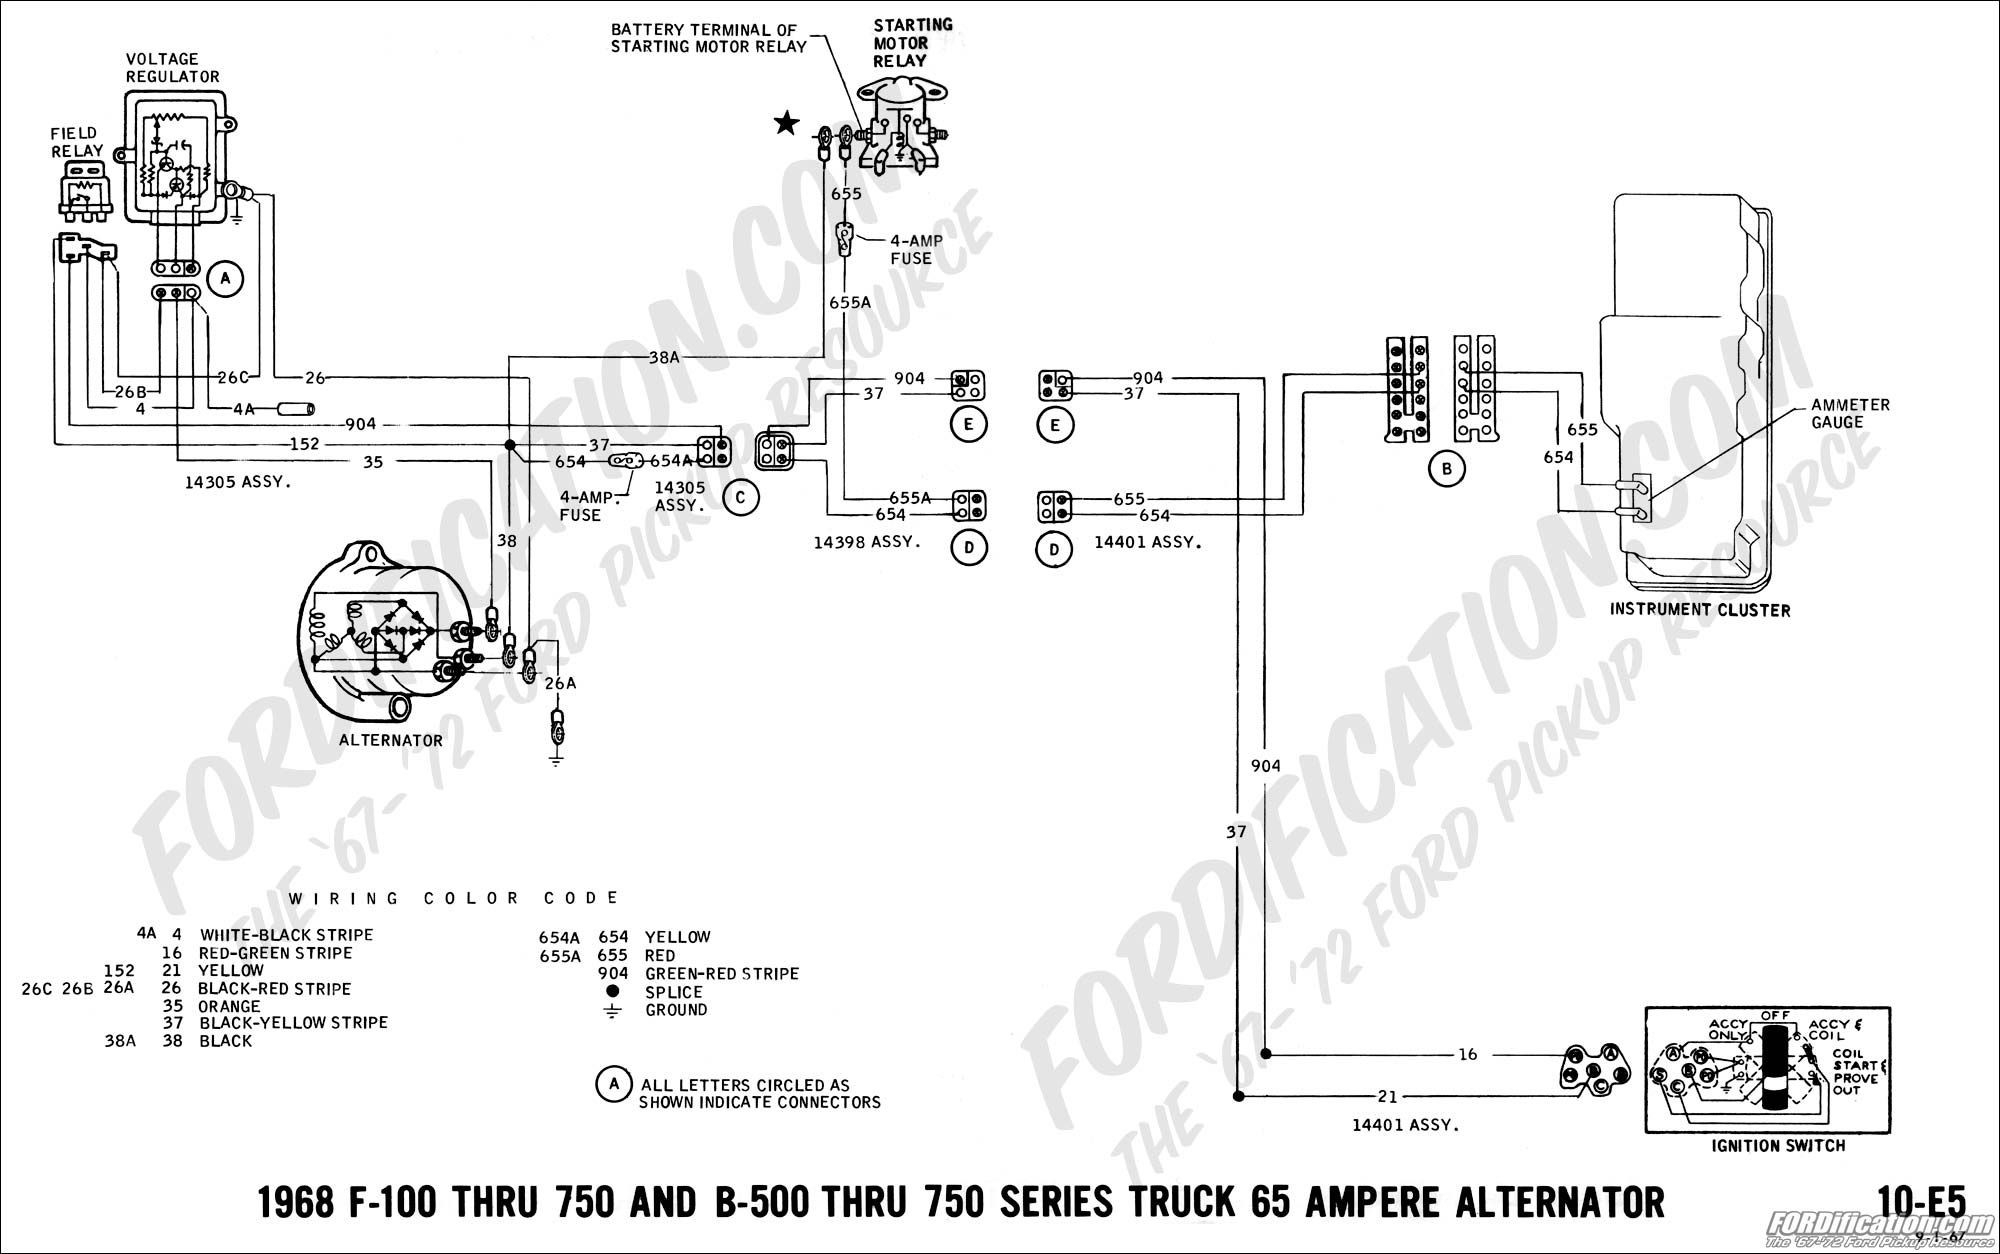 Automotive Voltage Regulator Wiring Diagram - Wiring Diagram Alternator Voltage Regulator Fresh 4 Wire Alternator Wiring Diagram Auto Throughout Voltage Regulator Inspirationa 68 ford Alternator Wiring 16n